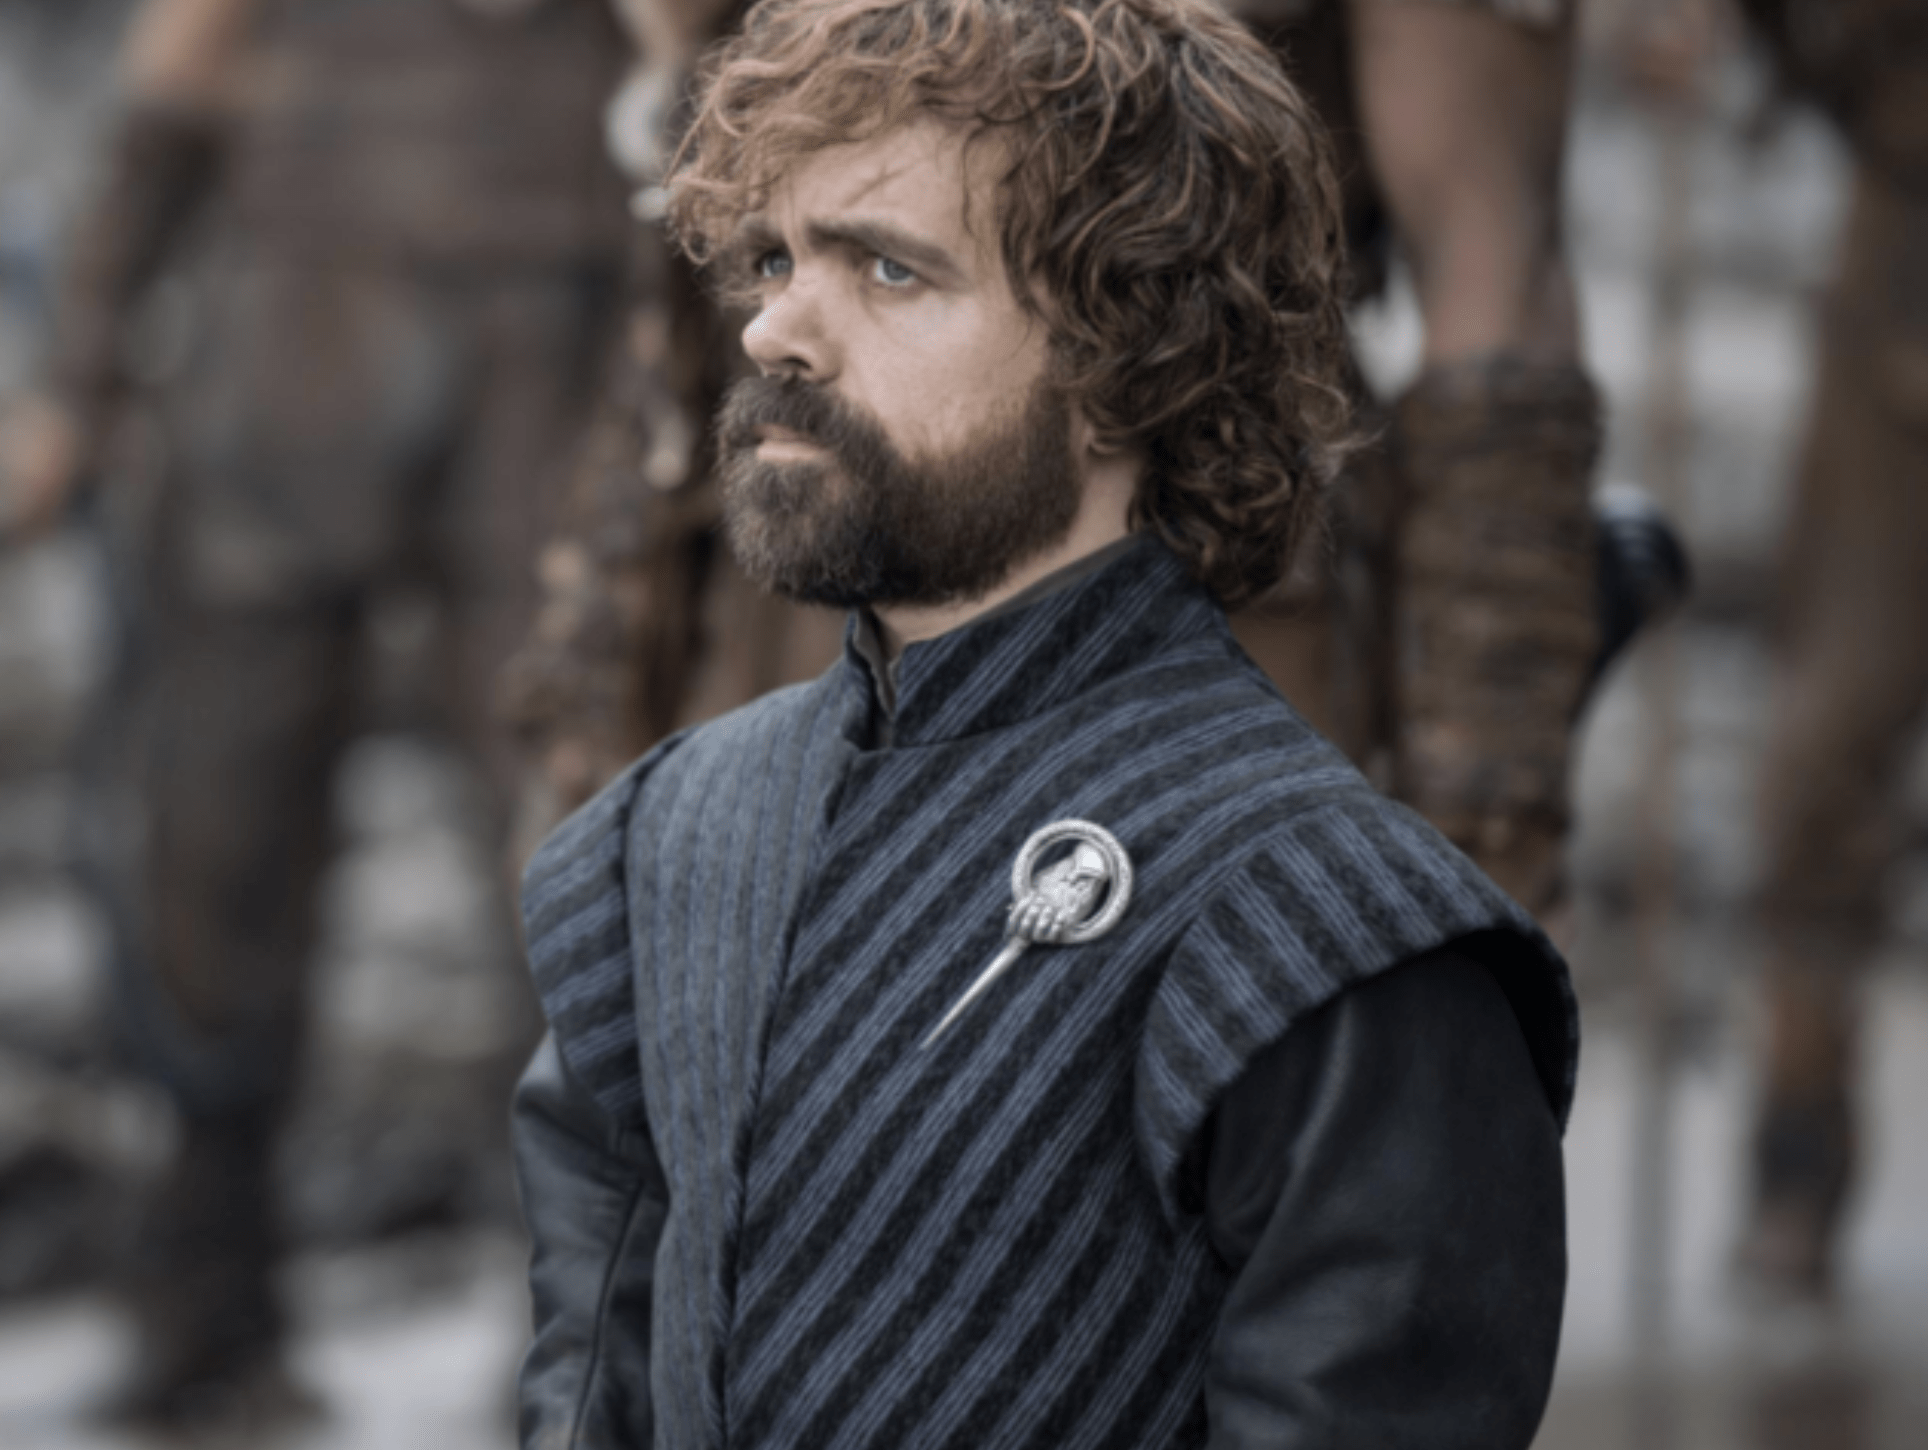 Every City and Town has a Sesame Street… even Westeros and yes